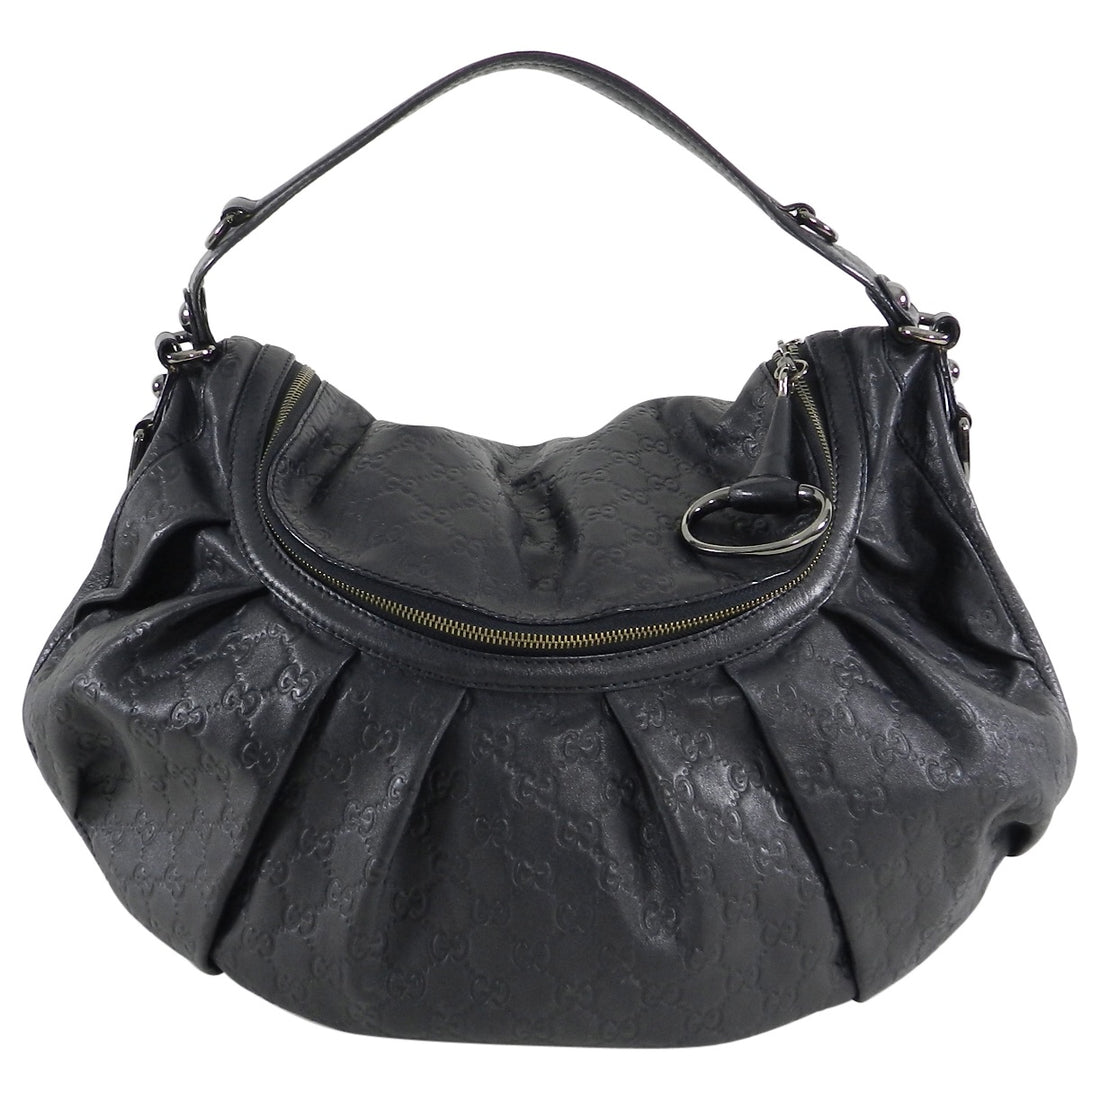 Gucci Black Monogram Leather Guccissima Hobo Bag